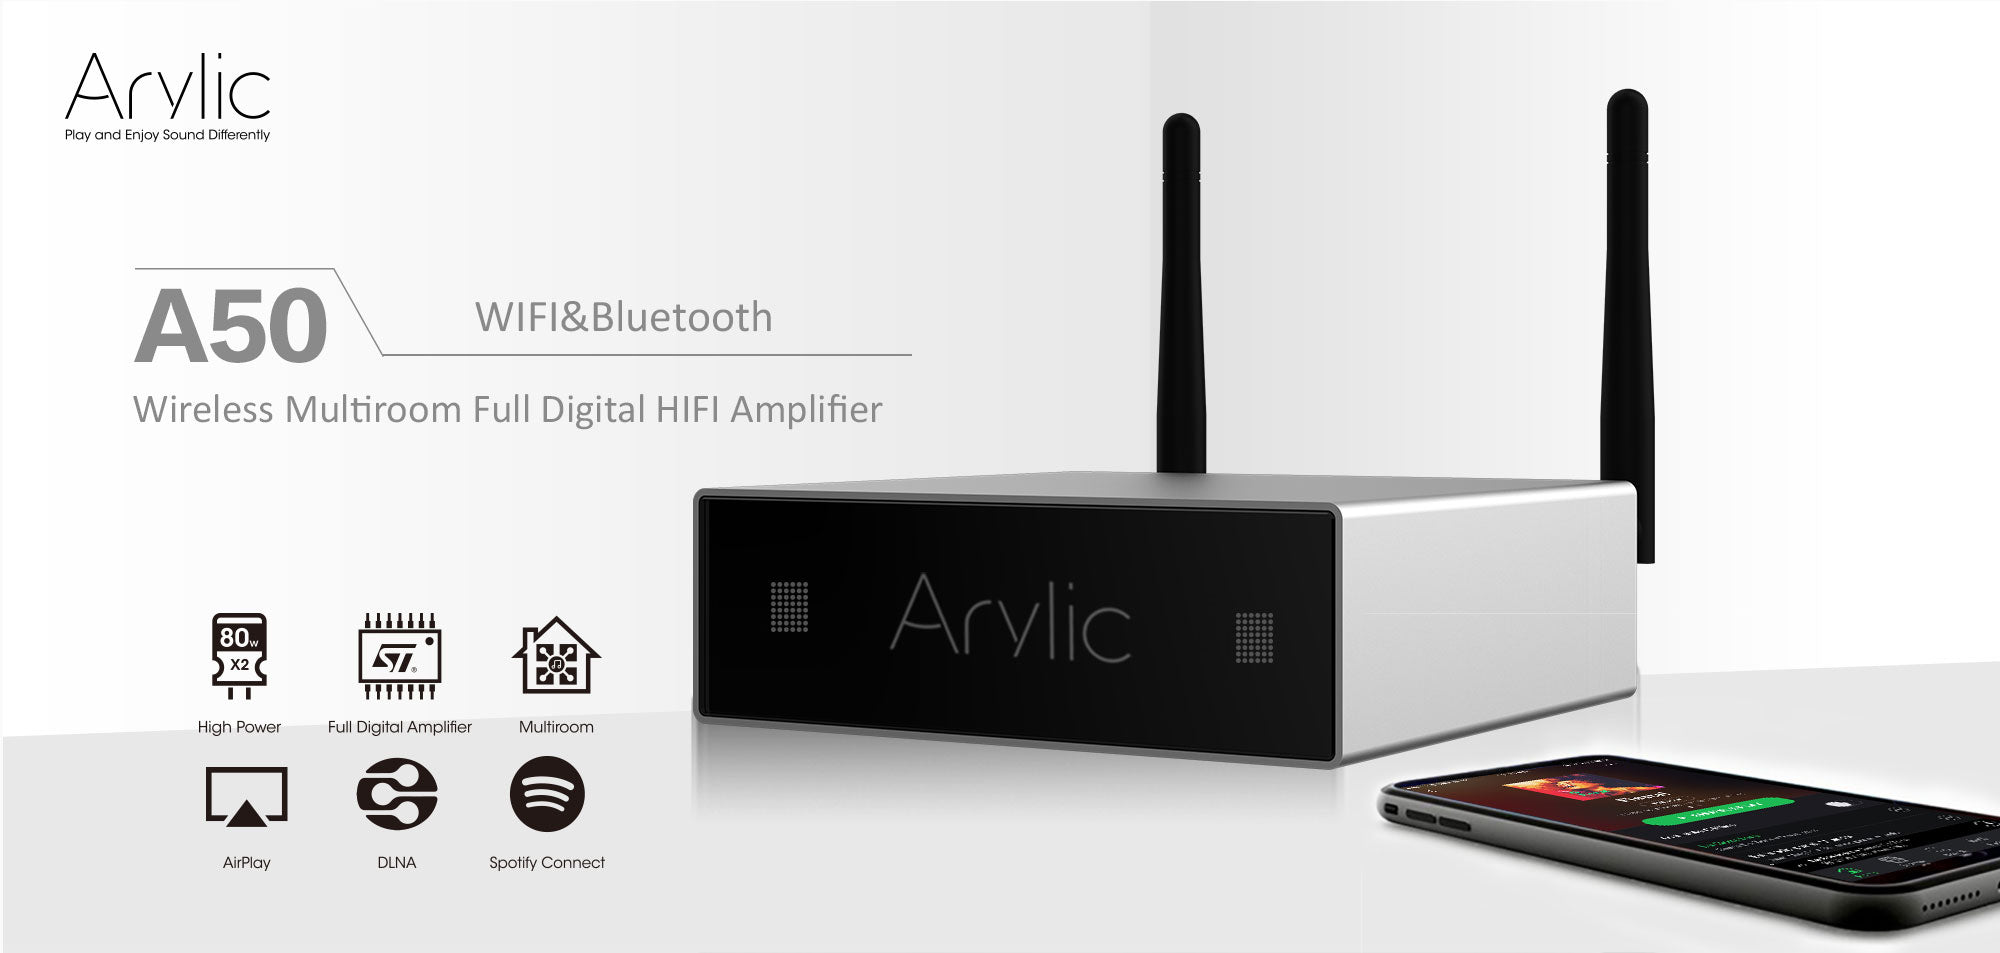 Arylic A50 WiFi & Bluetooth MultiRoom/Multizone Full Digital HiFi Stereo  Amplifier with Spotify,Airplay,DLNA and Free iOS&Android App